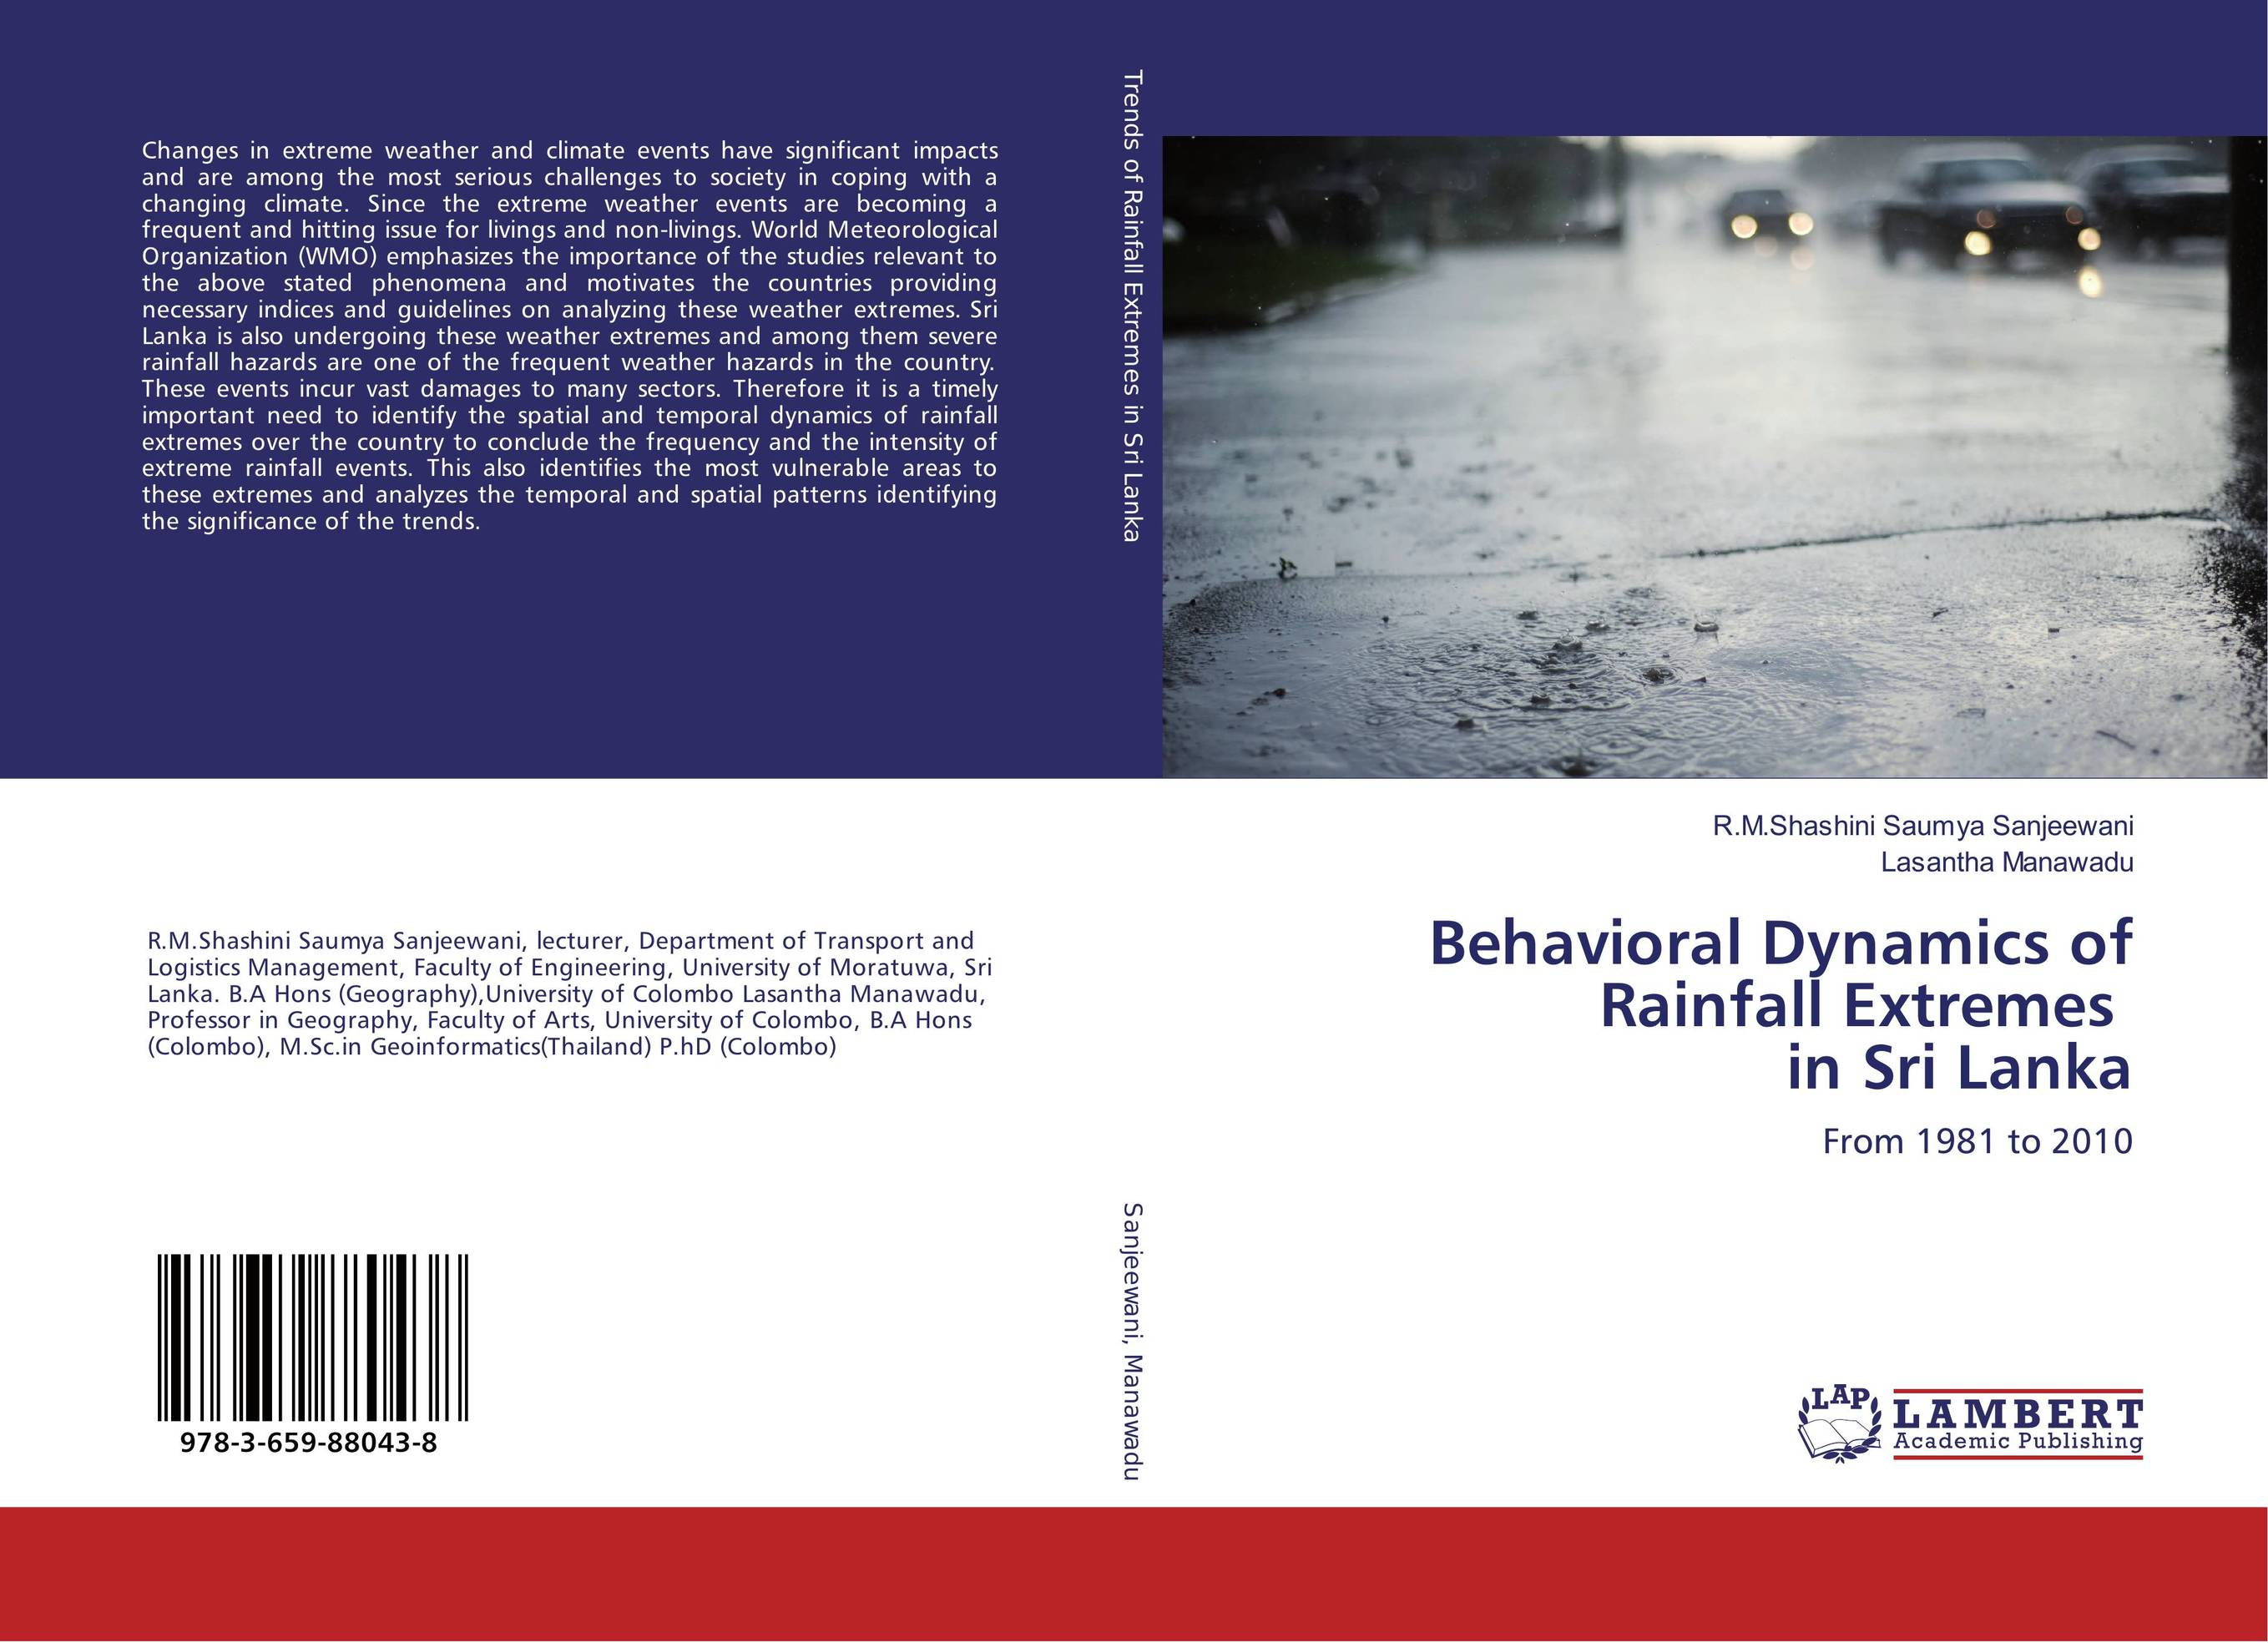 Behavioral Dynamics of Rainfall Extremes in Sri Lanka extreme weather